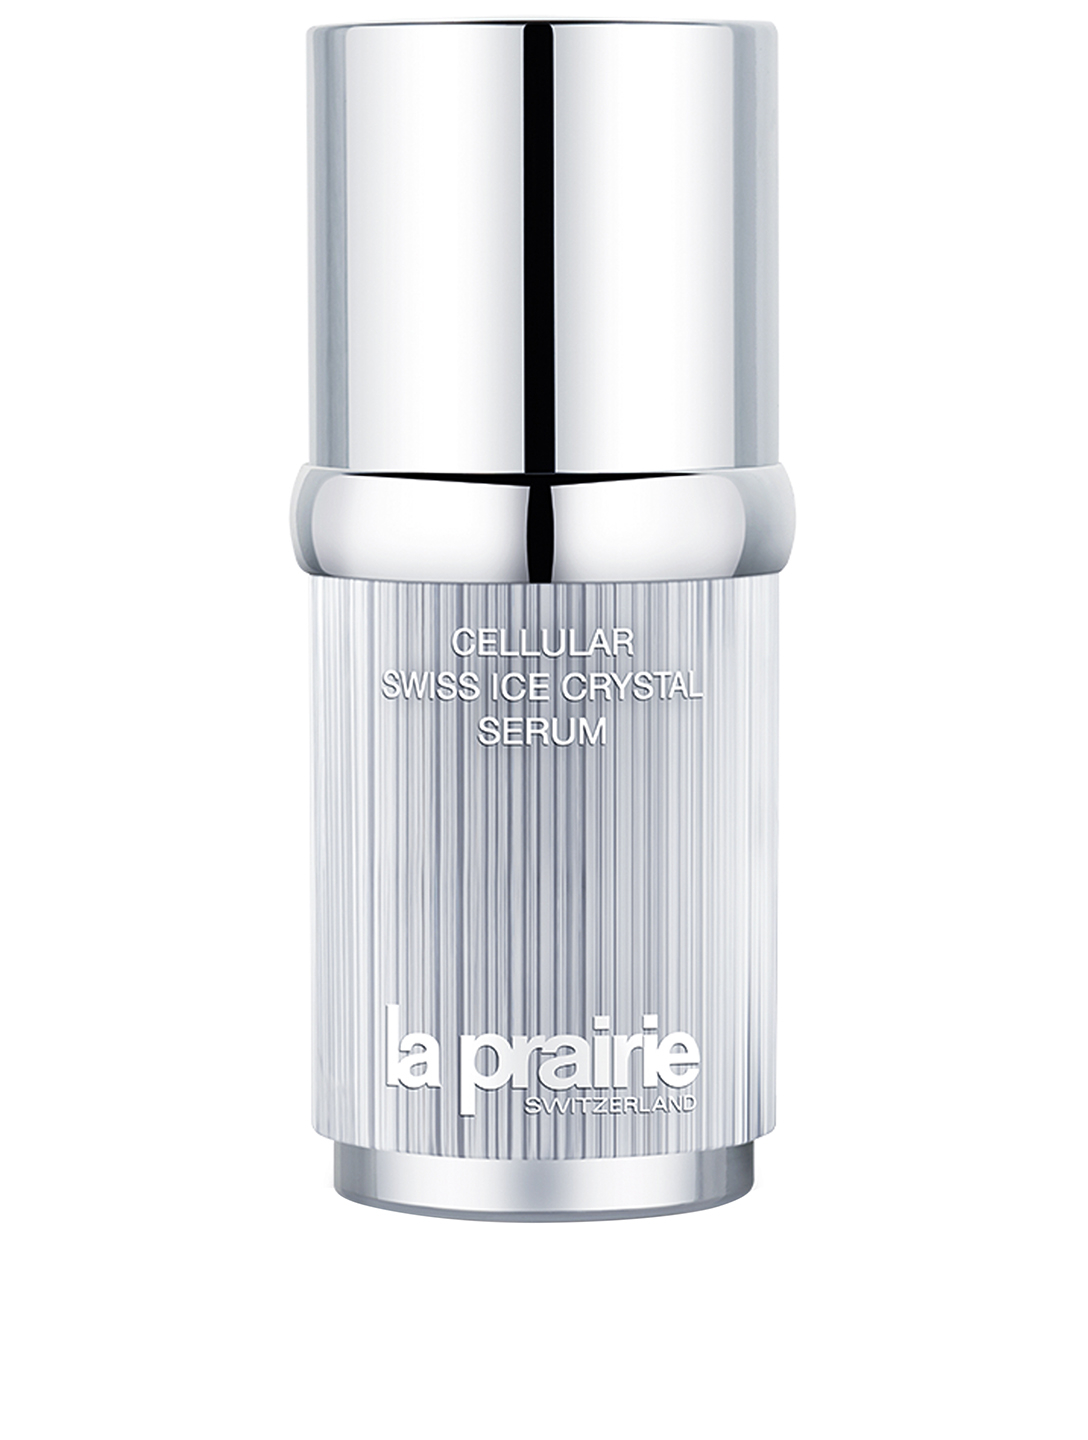 LA PRAIRIE Cellular Swiss Ice Crystal Serum Beauty